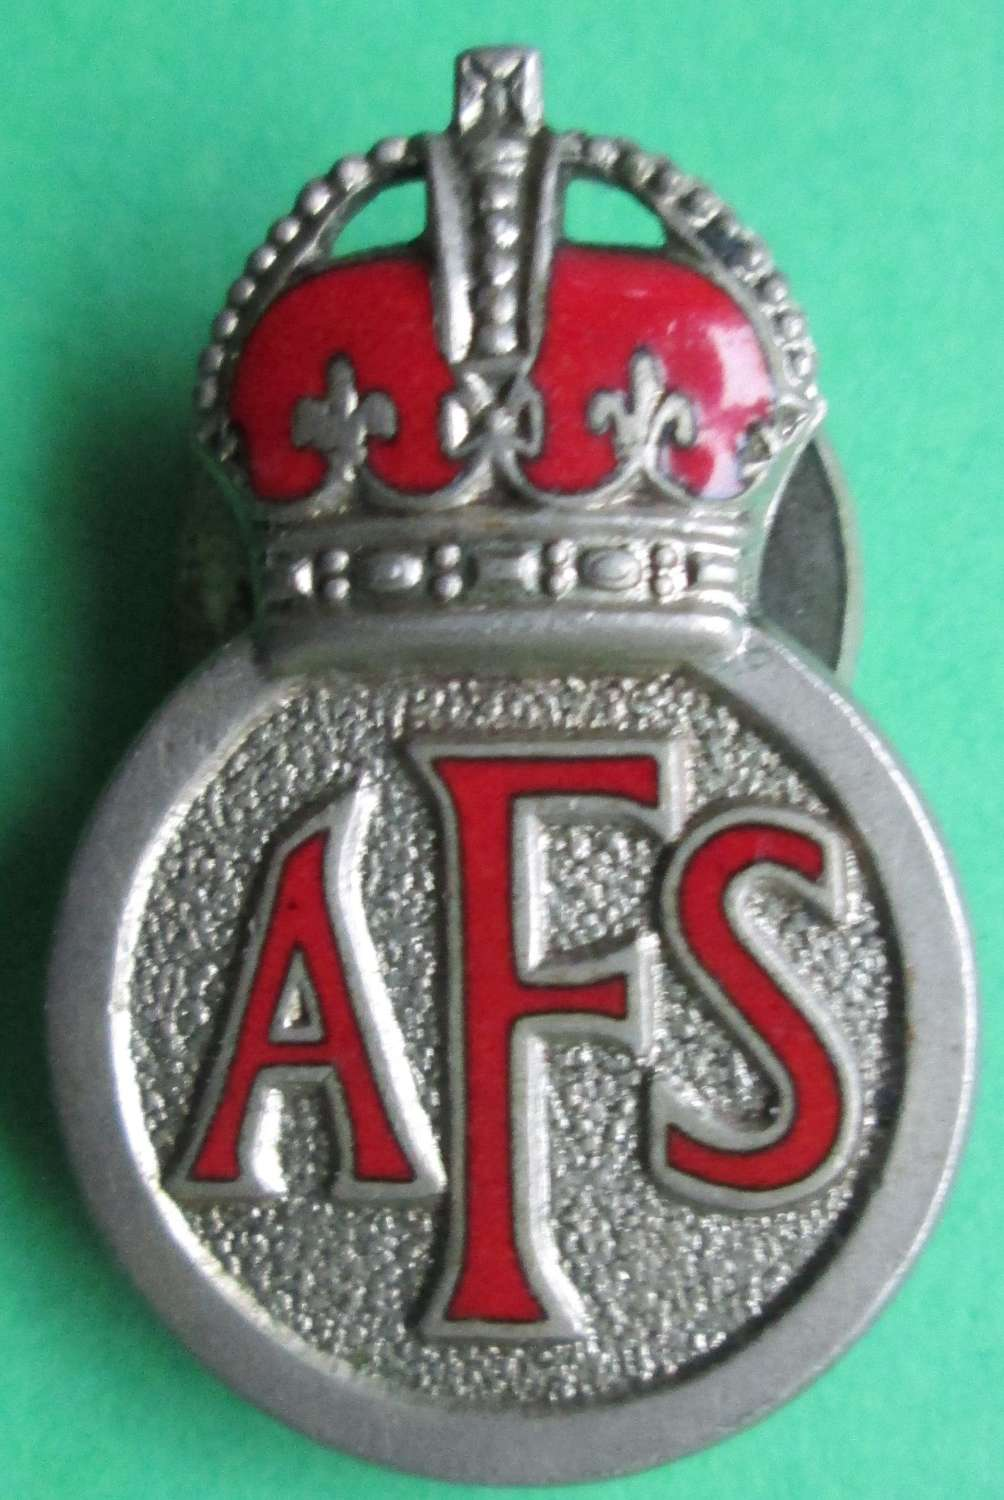 AN AUXILLARY FIRE SERVICE LAPEL BADGE